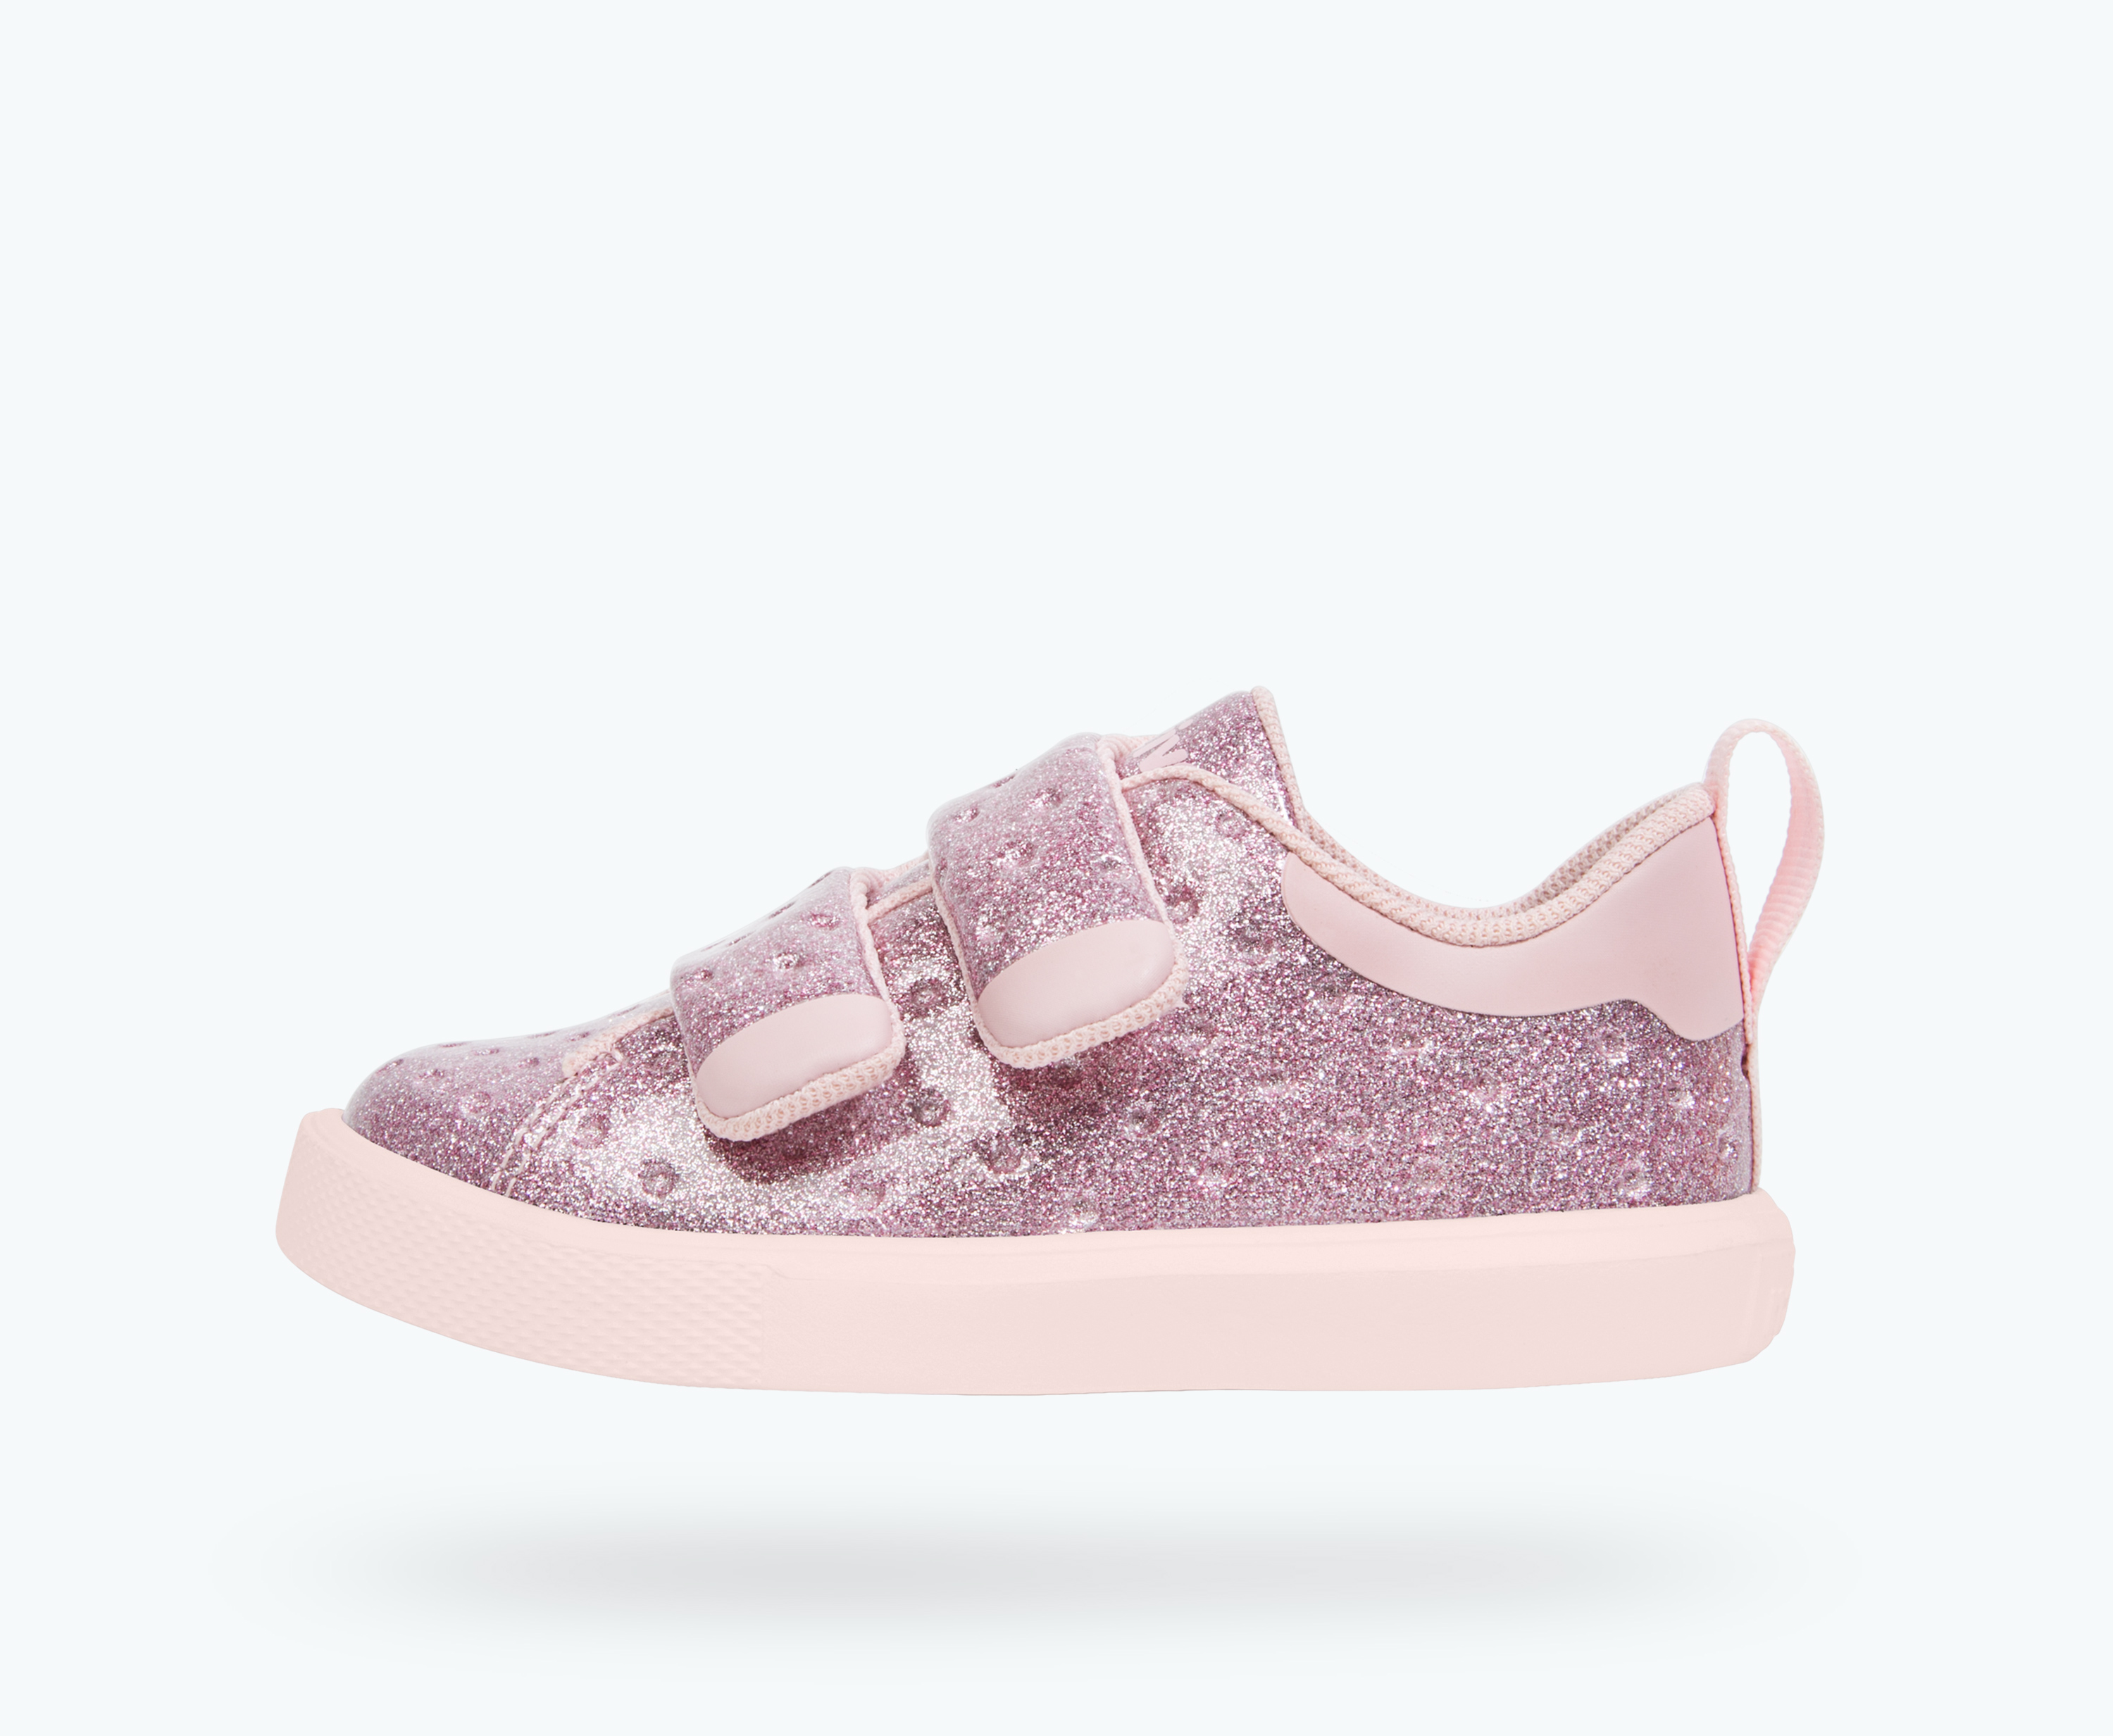 TODDLER SIZES PINK GLITTER//COLD PINK 23104407-5957 NATIVE MONACO